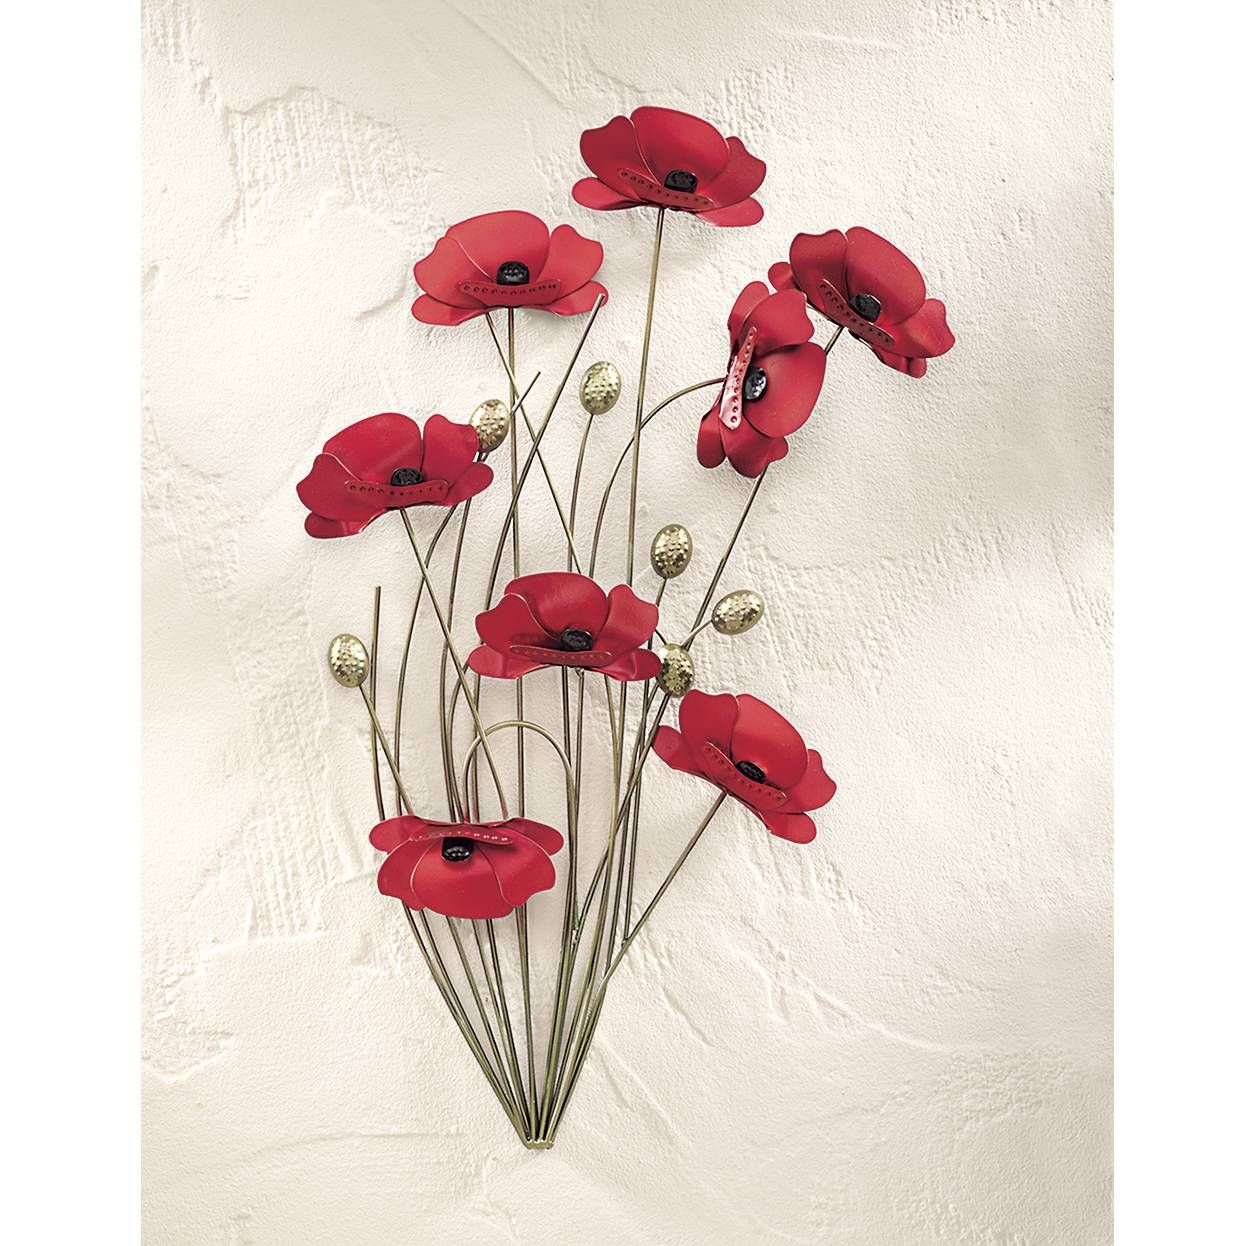 Bright Poppies Wall Art BestSelling Gifts, Clothing